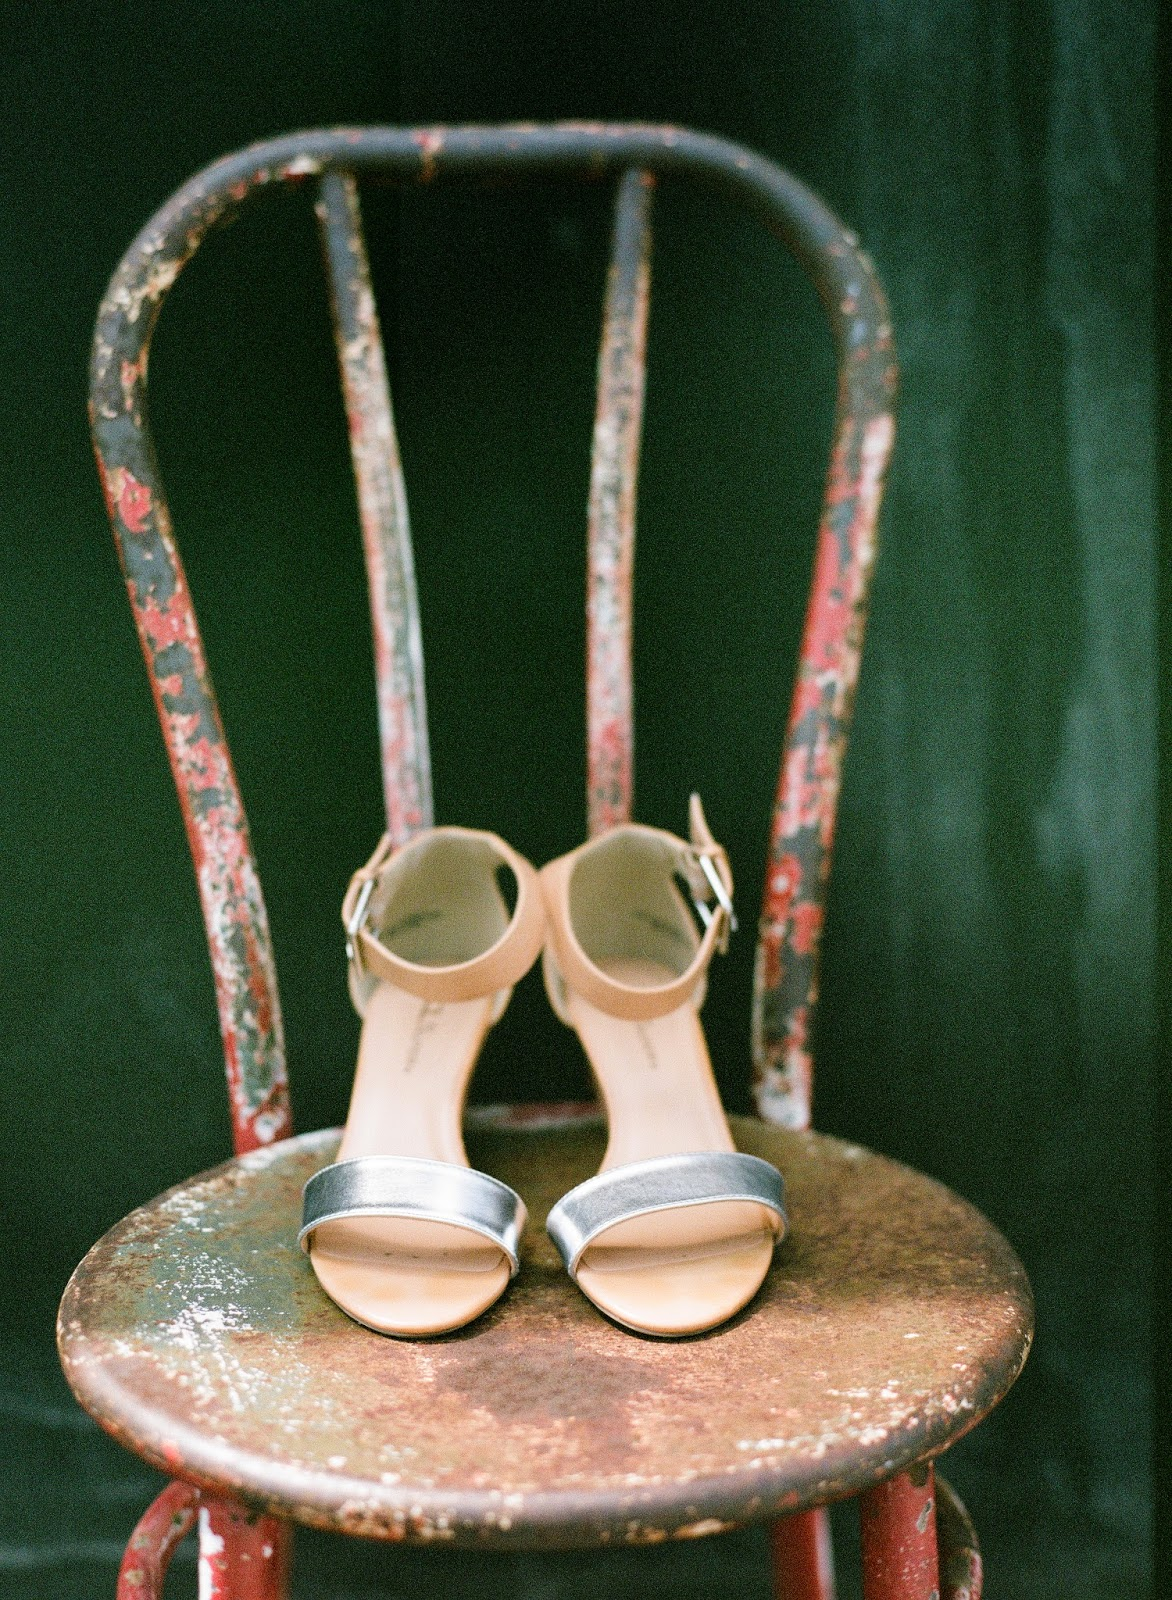 minimal silver wedding shoes on an antique chair with a green backdrop on a brooklyn, new york rooftop